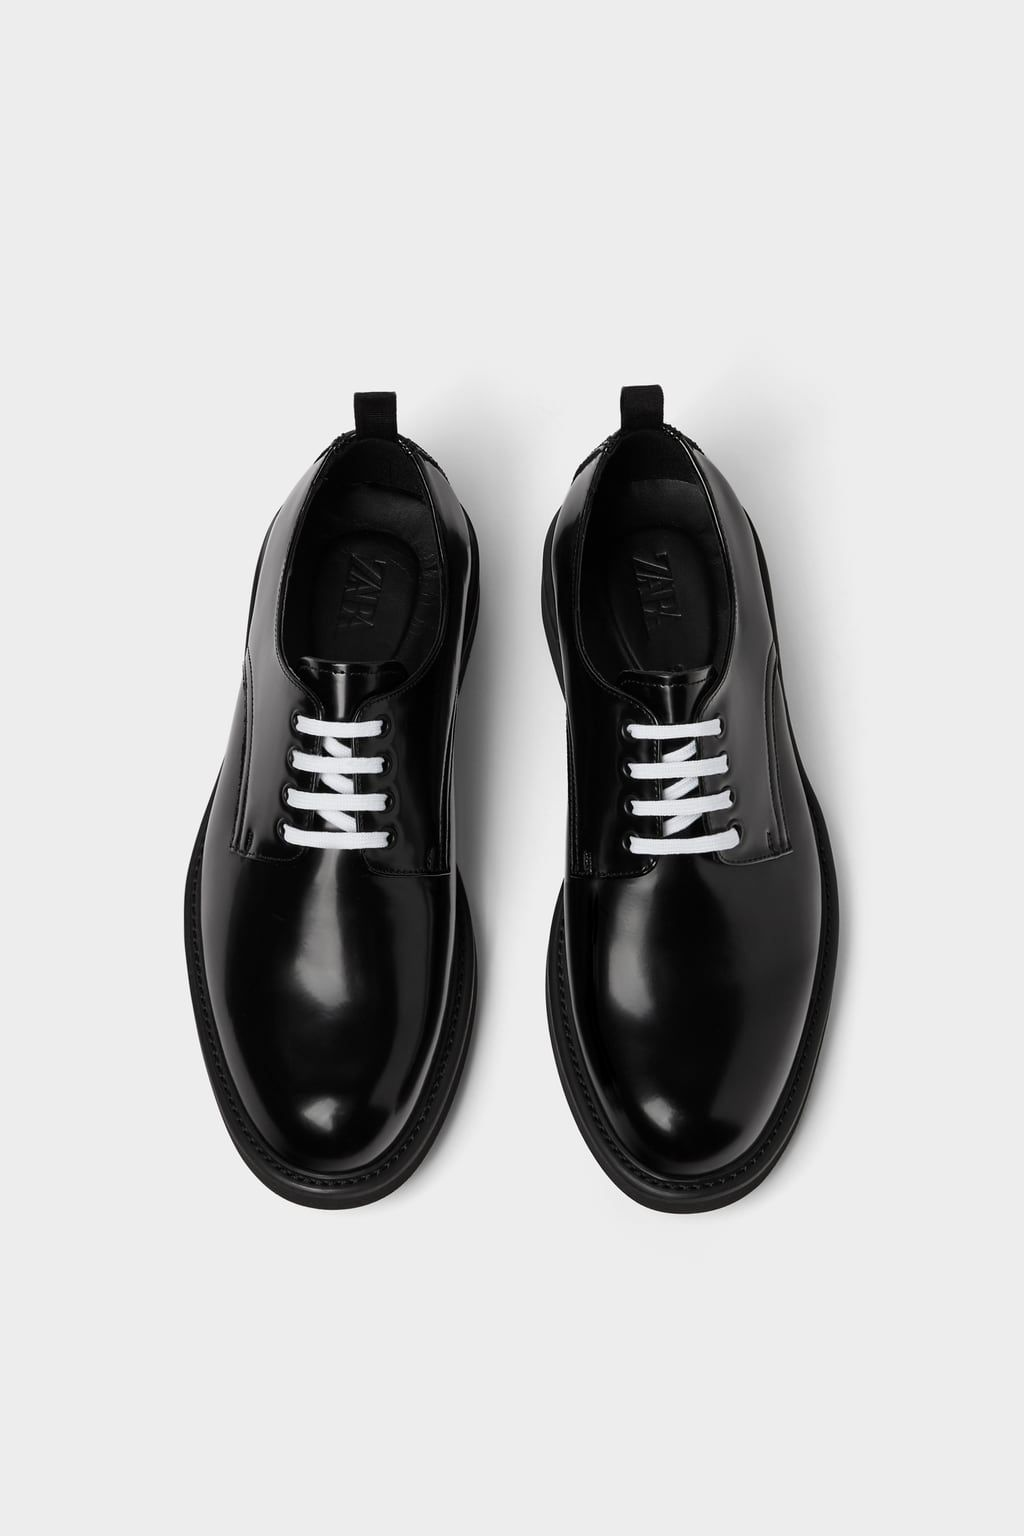 Black Shoes Zara Light View All Shoes Man Zara Indonesia Black Formal Shoes Men Stylish Shoes For Men Black Formal Shoes